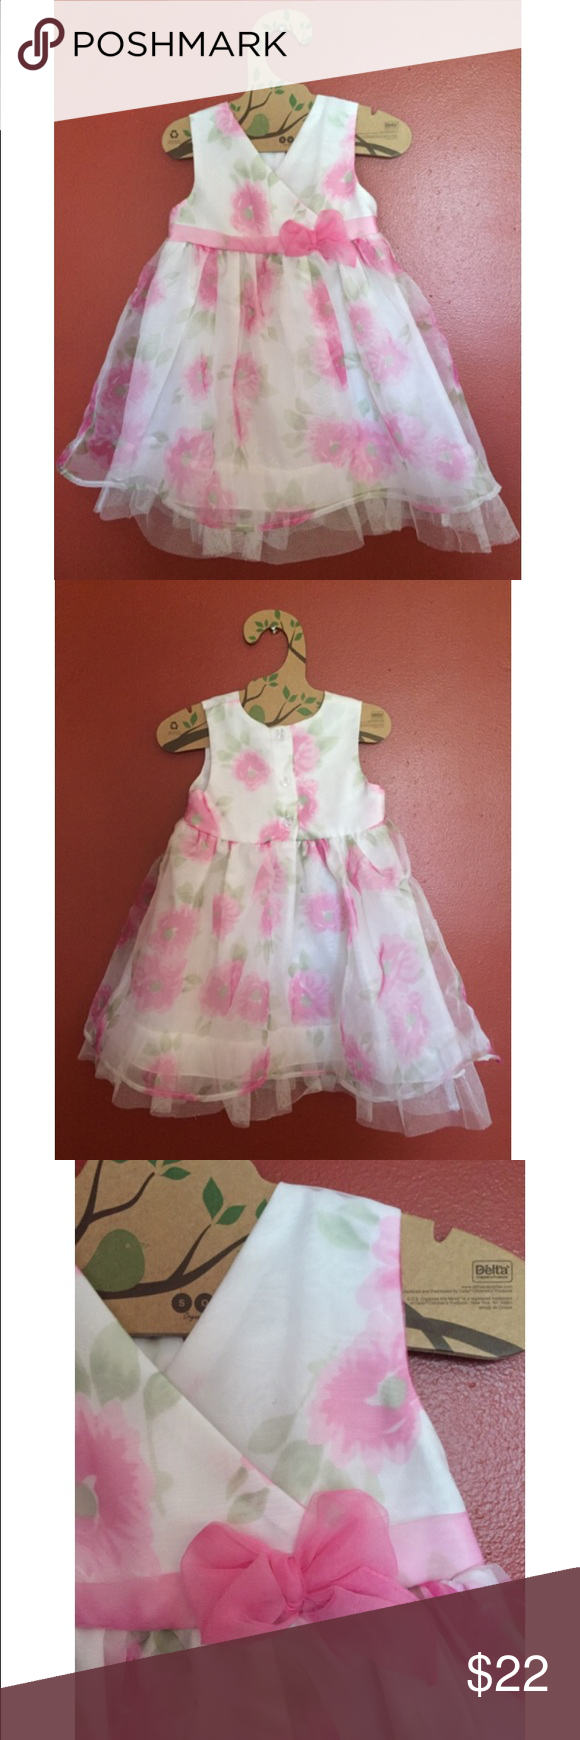 White dress with pink and green flowers Beautiful floral dress with tulle hemline. Nice gauzy overlay. Excellent condition, only worn once. George brand from Canada. George Dresses Formal